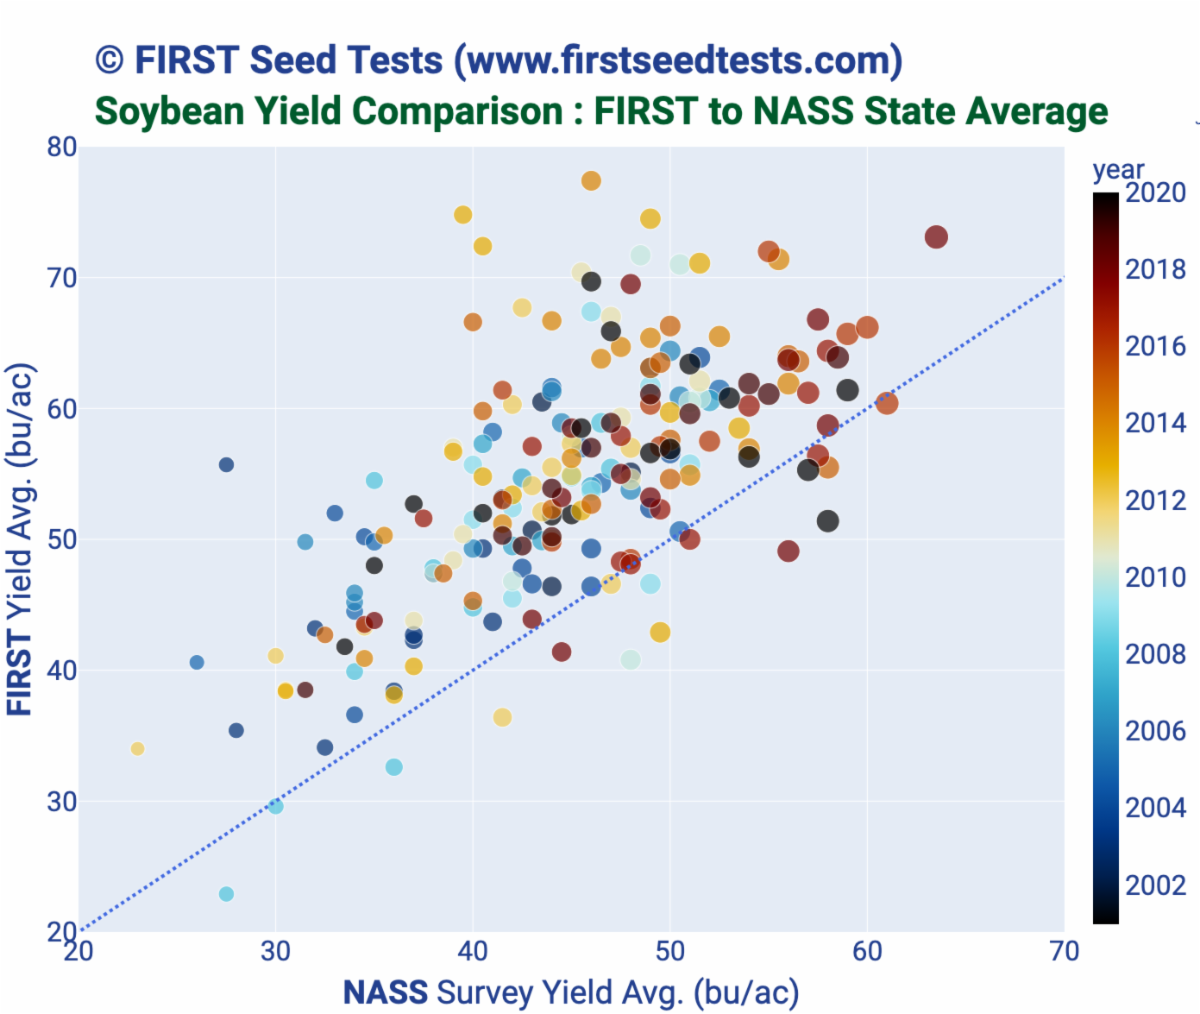 Soybean Yield NASS to FIRST comparison